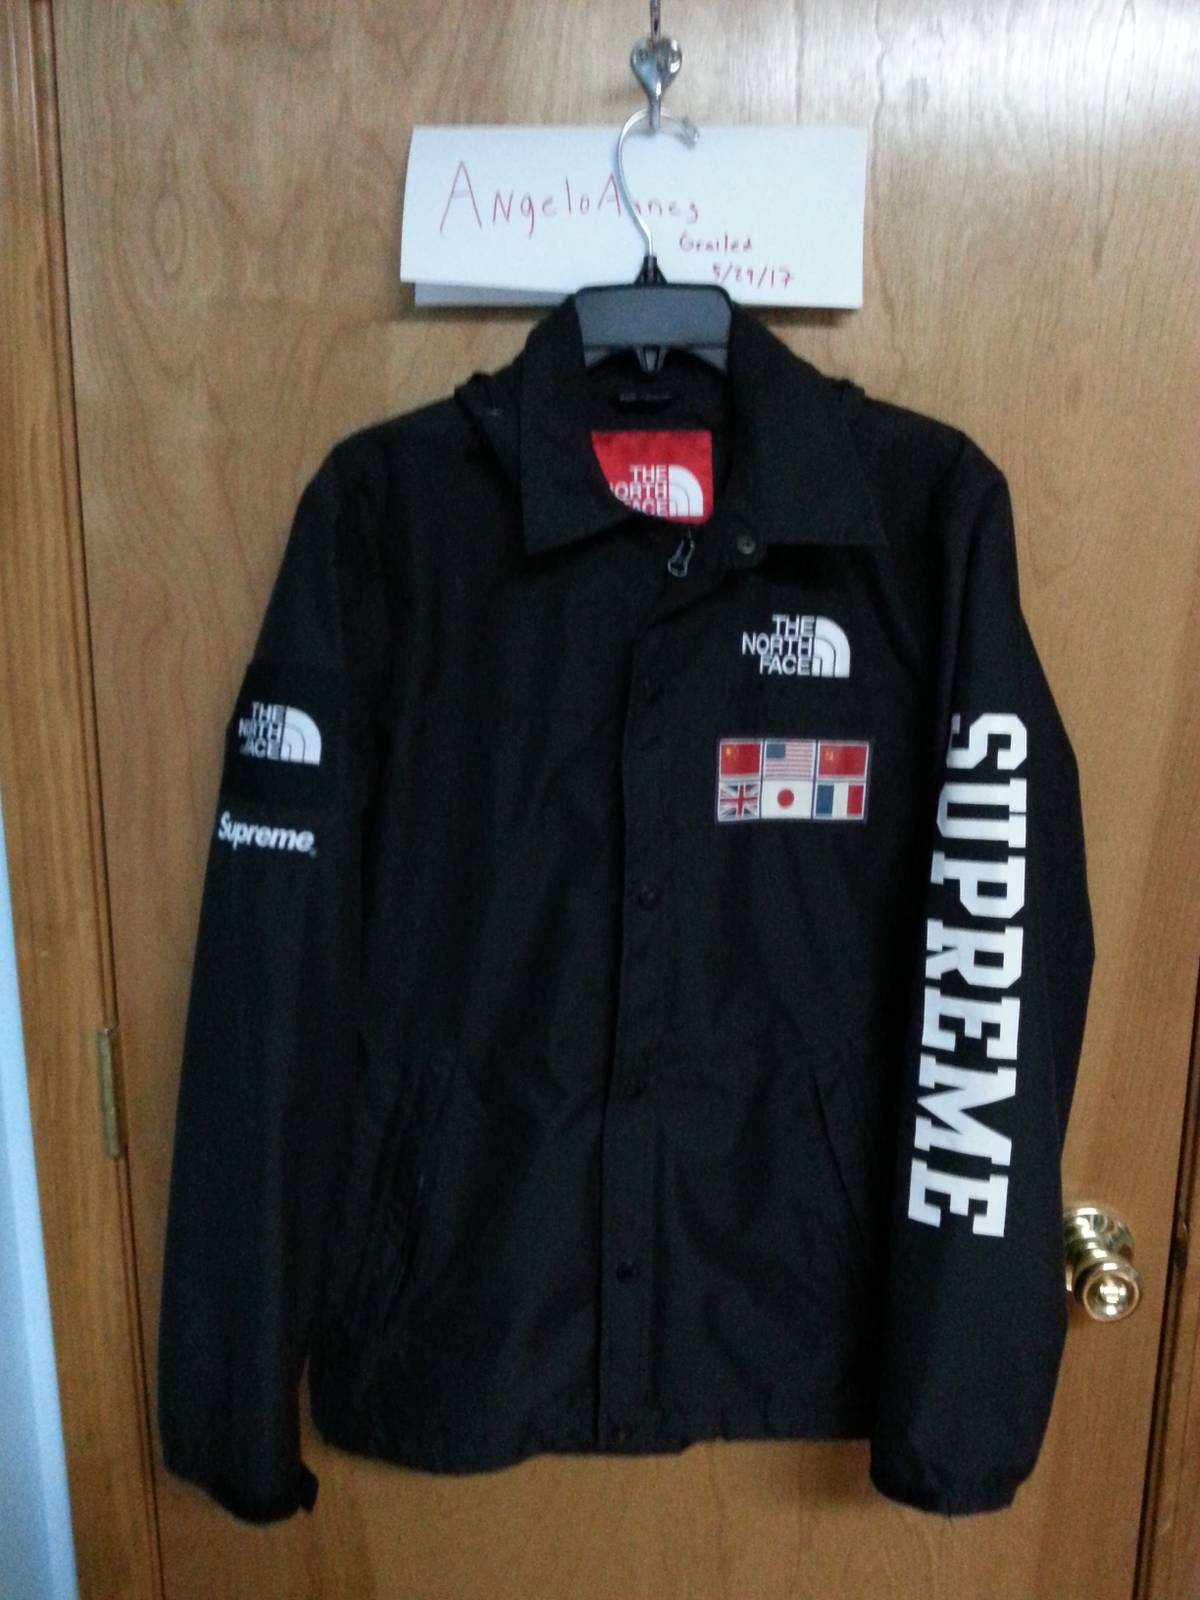 Supreme Supreme x The North Face 2014 Black Expedition Coaches Jacket Size  s - Light Jackets for Sale - Grailed cb7395f72